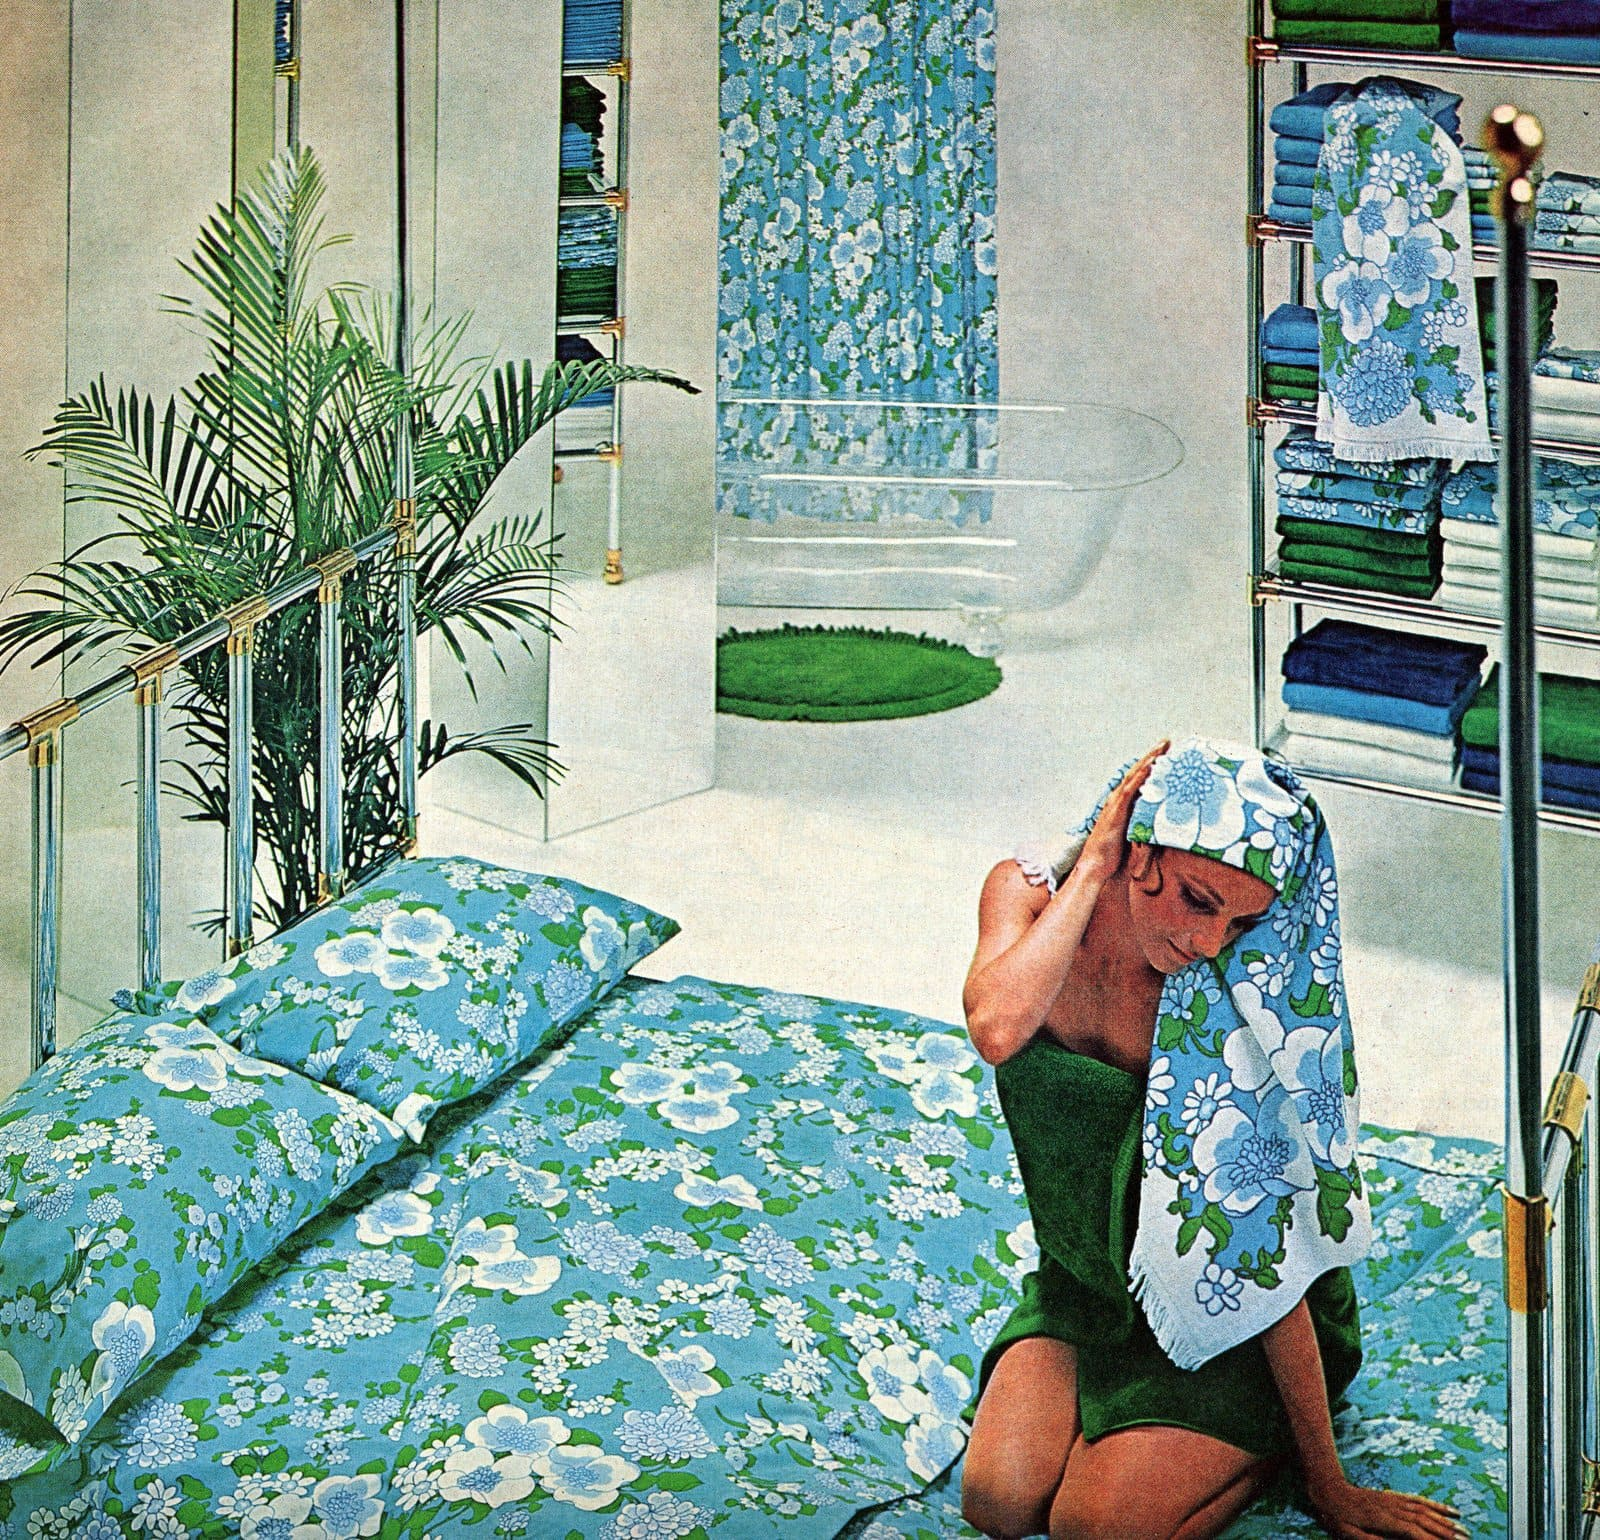 Trendy 1970s blue floral sheets and towels in blue and green large flower pattern - Serenity blue